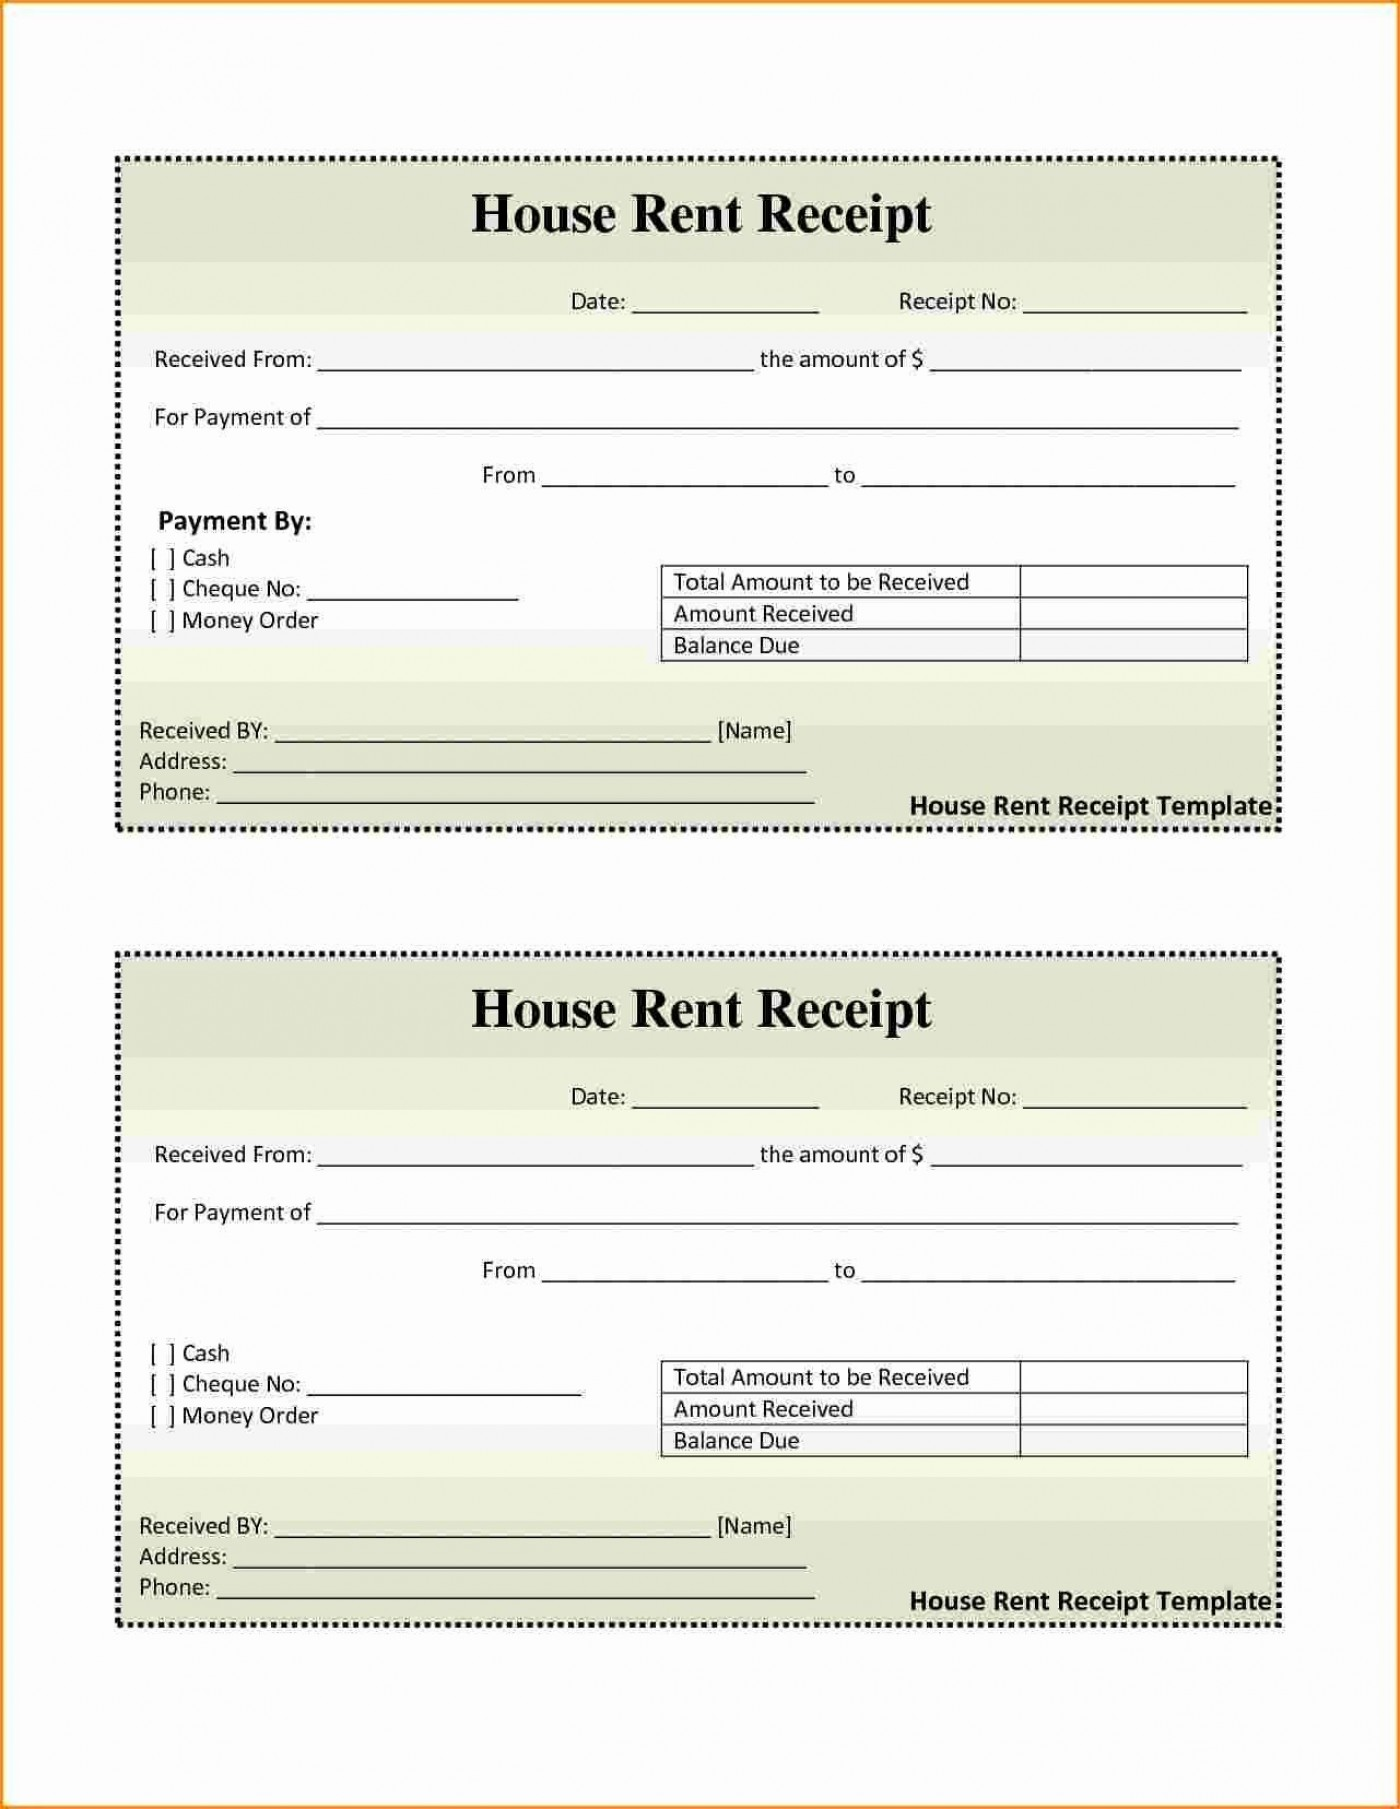 001 Awesome House Rent Receipt Sample Doc Idea  Template Word Document Free Download Format For Income Tax1400